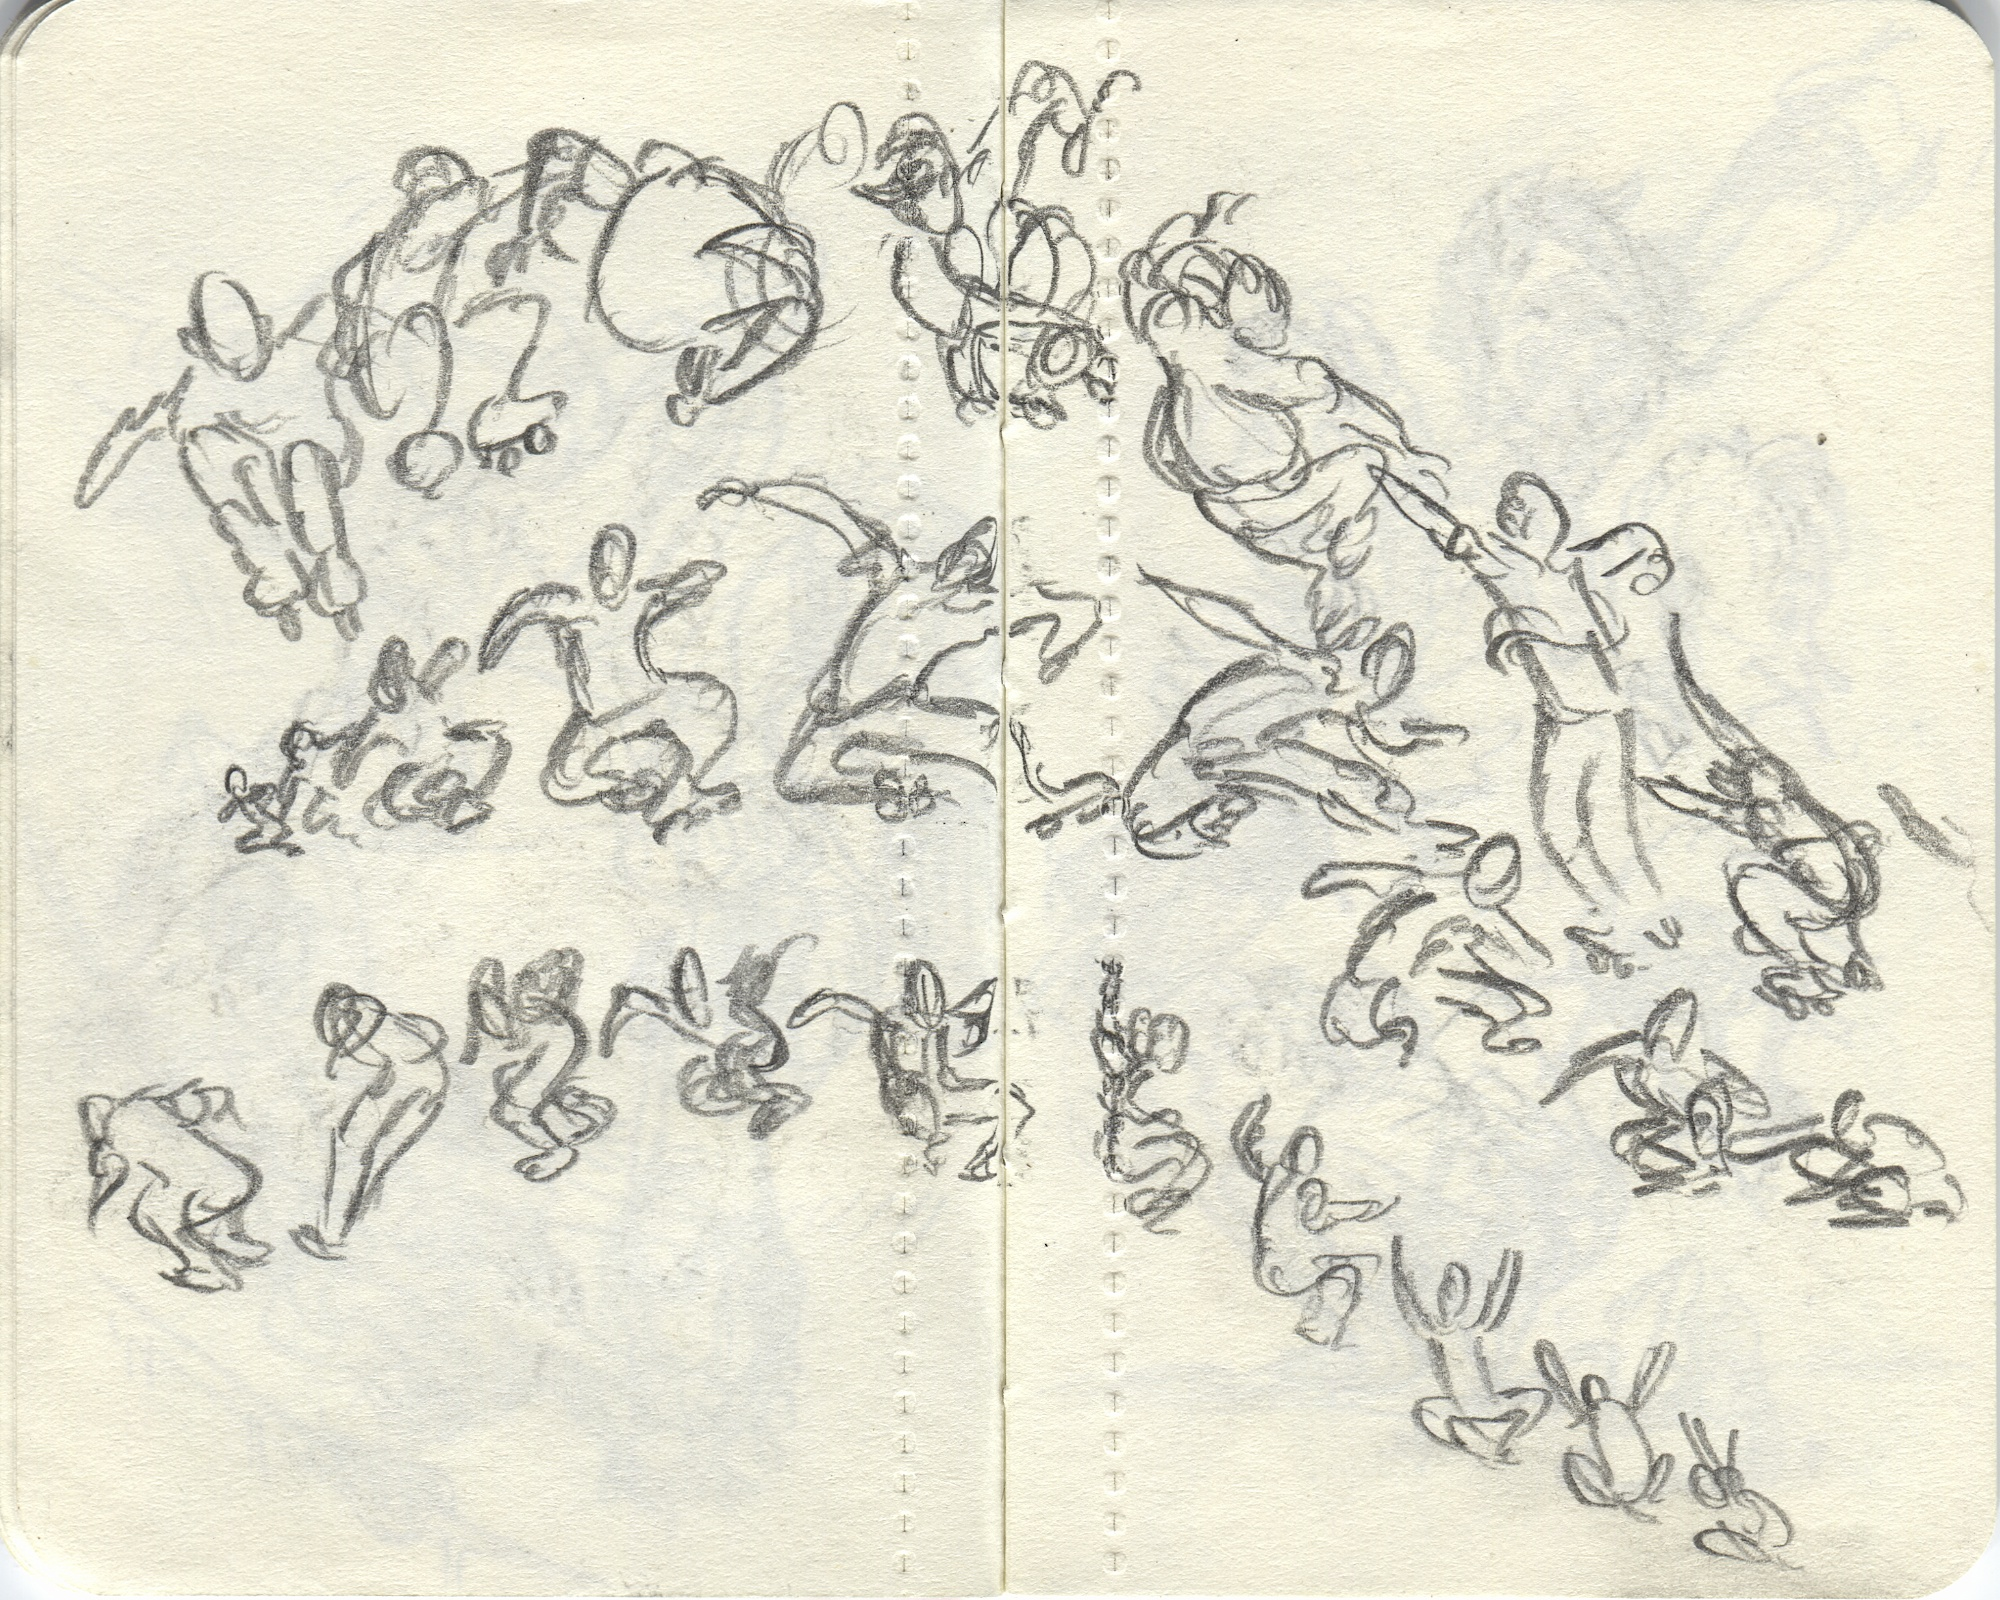 jumping motion sketch